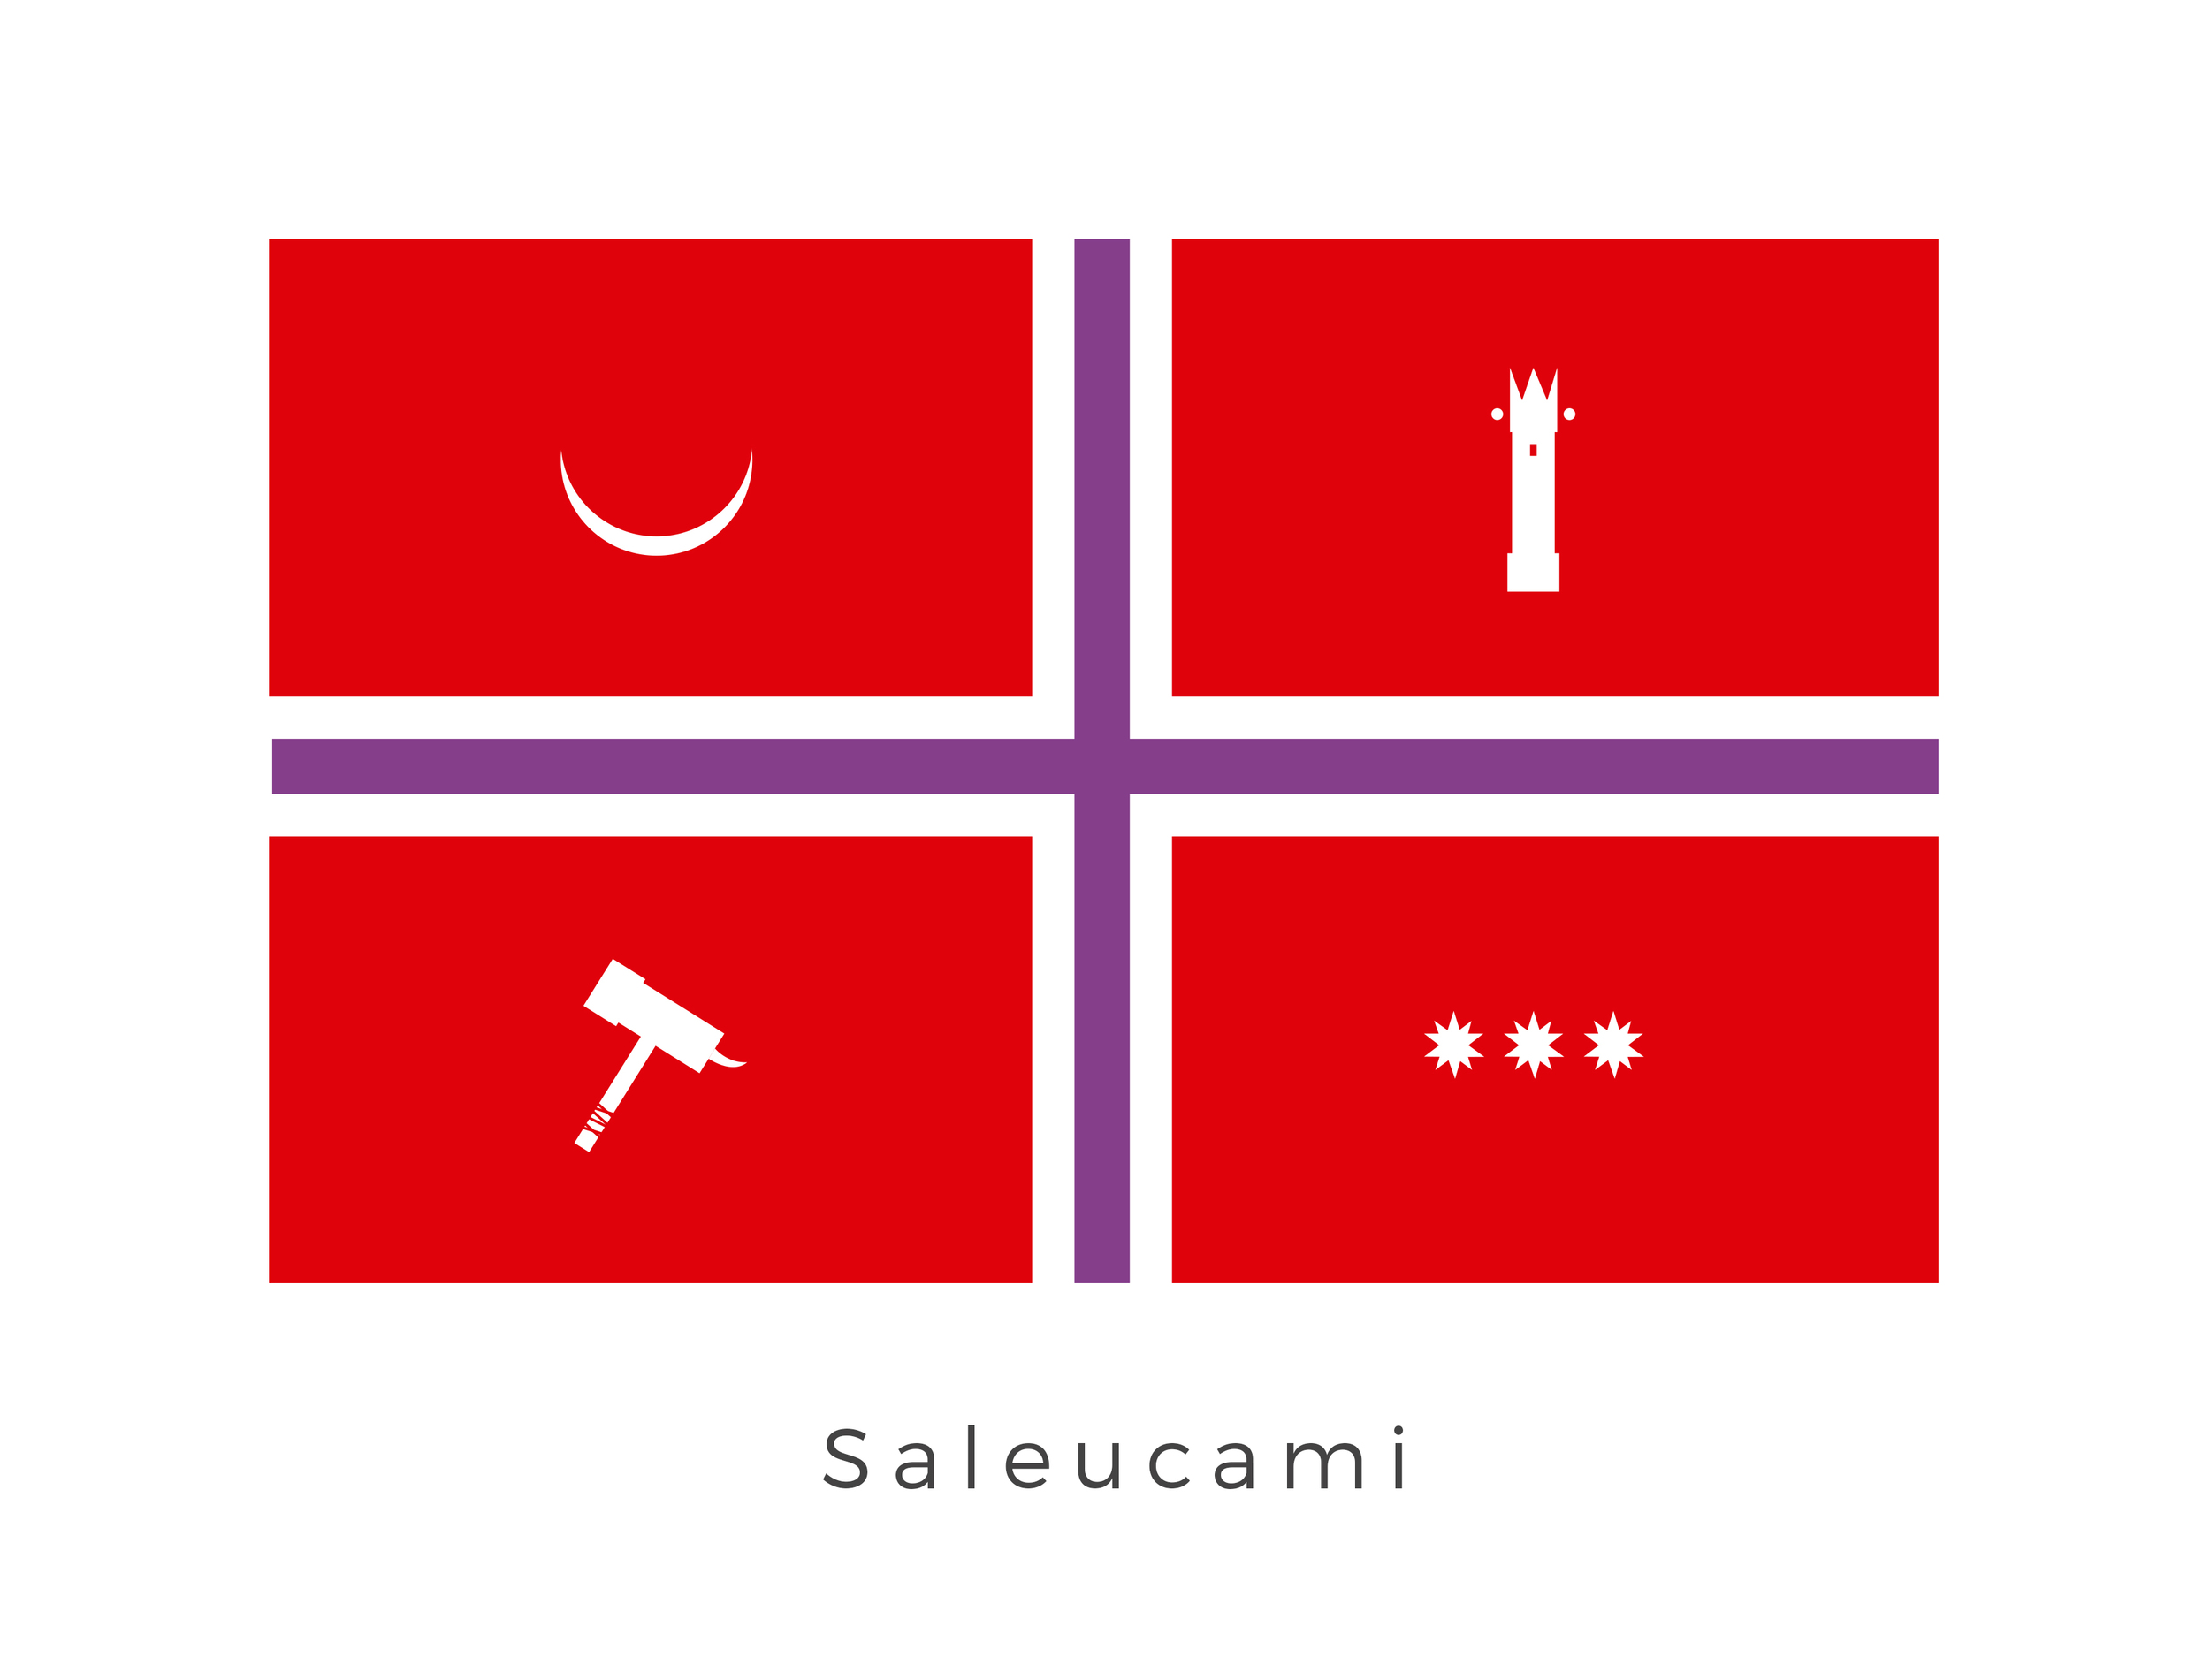 Saleucami  was a dim, arid Techno Union world with scattered caldera oases filled with vegetation. Its plant life included unusual bulbous trees. It was located between Kegan and Handooine. The colour red is the primary colour of Saleucami as it represents the flowing magma which lies just below the surface of the planet. This powered the cities and was a significant factor in the planets economic success as well as its desirability for colonists and conquerors alike. The planet has a long and divided history, with the current design being a modern attempt to reference what are considered the most important periods in the planets history. This has been achieved by using a purple and white 'bandage'. The purple and white colours represent the bubse tree, its healing properties signifying the healing wounds between these different periods. The spiked hammer signifies the Colonization Period when the Wroonians colonised vast areas of the planet from 6100BBY. The tower represents the period known as the Commerce Period in which Saleucami came under the power of the Techno Union. The three star formation represents the period known as the Alliance Period. This was when Saleucami aligned itself politically with Felucia and Mygeeto. Slanderously called the Triad of Evil. The half moon represents the Prophecy Period. This was the period of time when a Force sensitive female Itkotchi who rose to power as a cult leader.